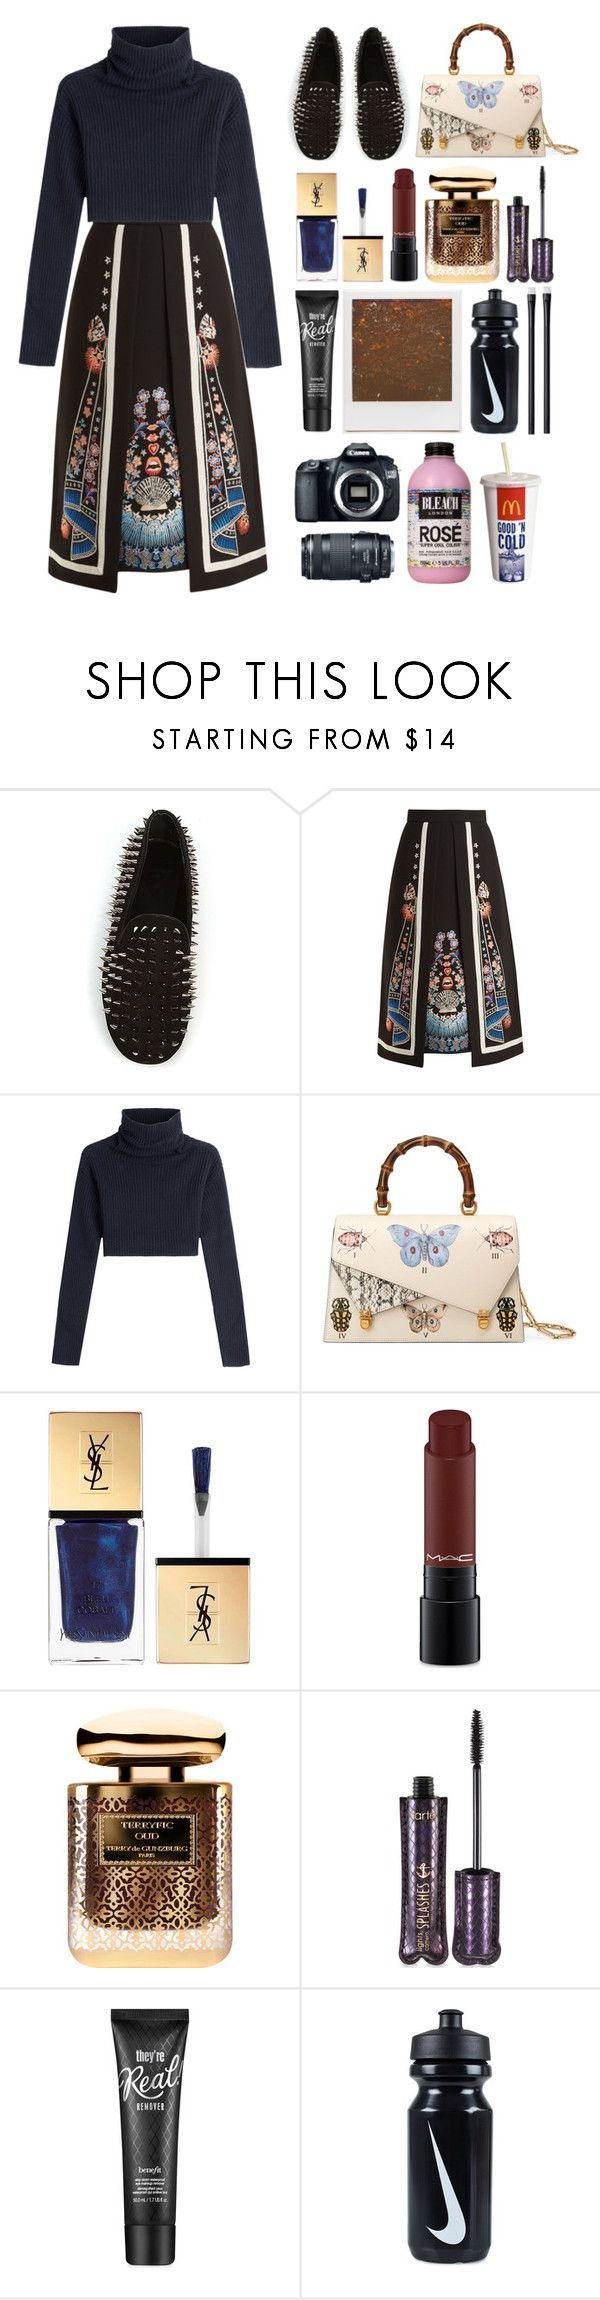 """6.313"" by katrinattack ❤ liked on Polyvore featuring UNIF, Temperley London, Valentino, Gucci, Yves Saint Laurent, MAC Cosmetics, Terry de Gunzburg, tarte, Benefit and Impossible Project"